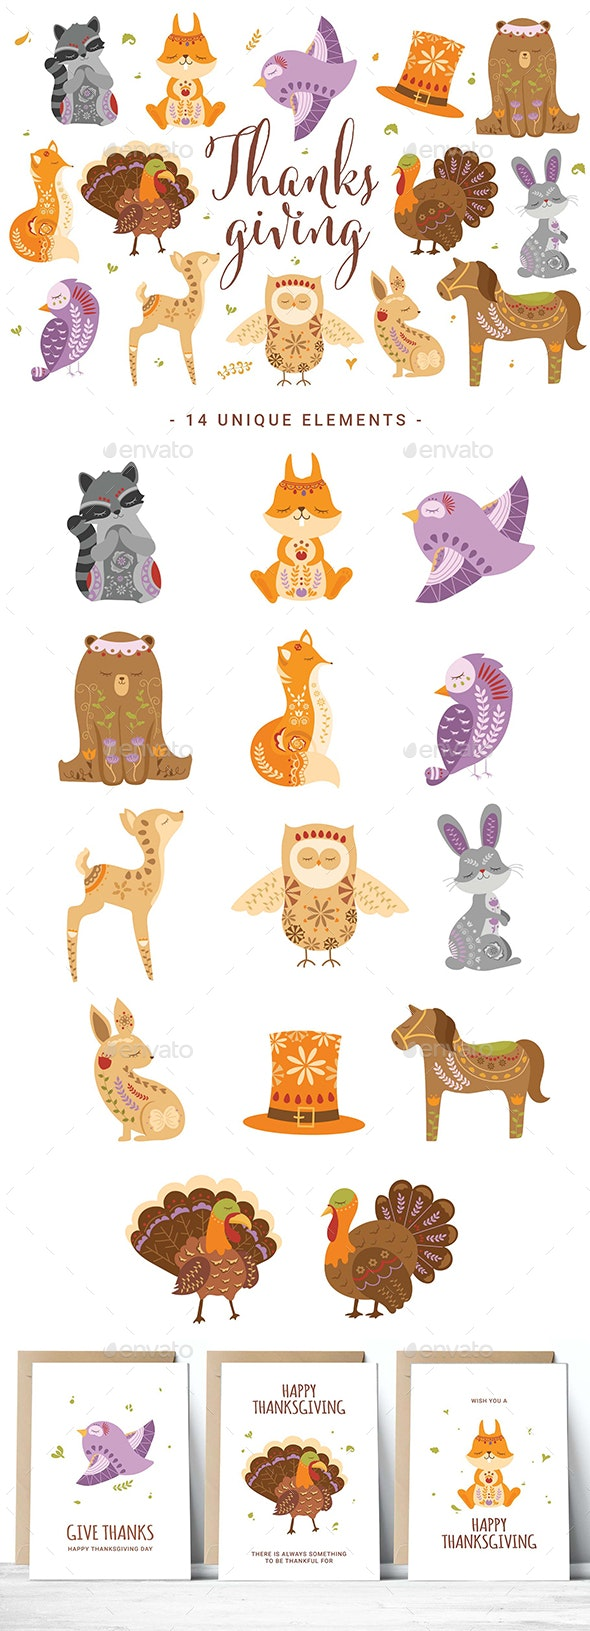 Thanksgiving Woodland Creature Clipart - Objects Illustrations